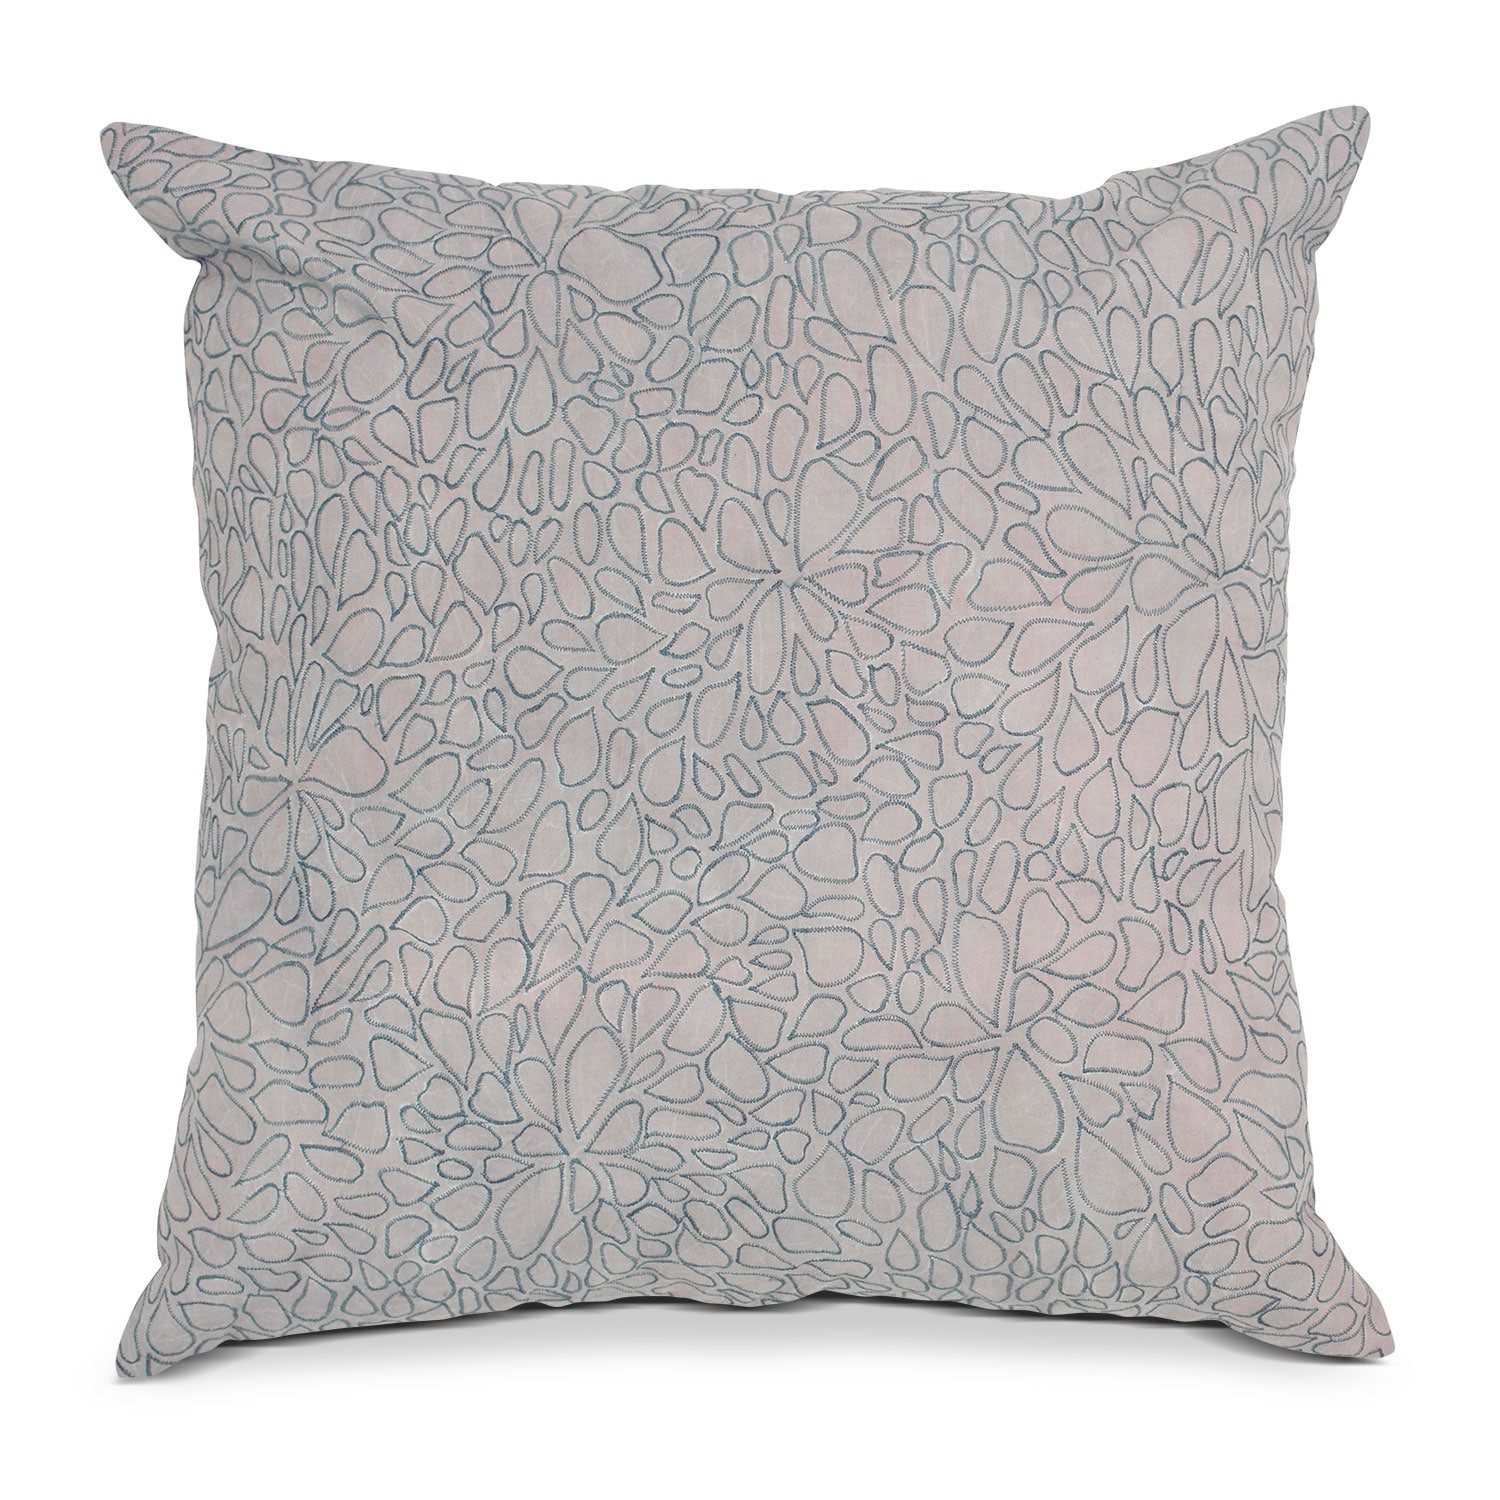 Petal Blush Gray Decorative Pillow